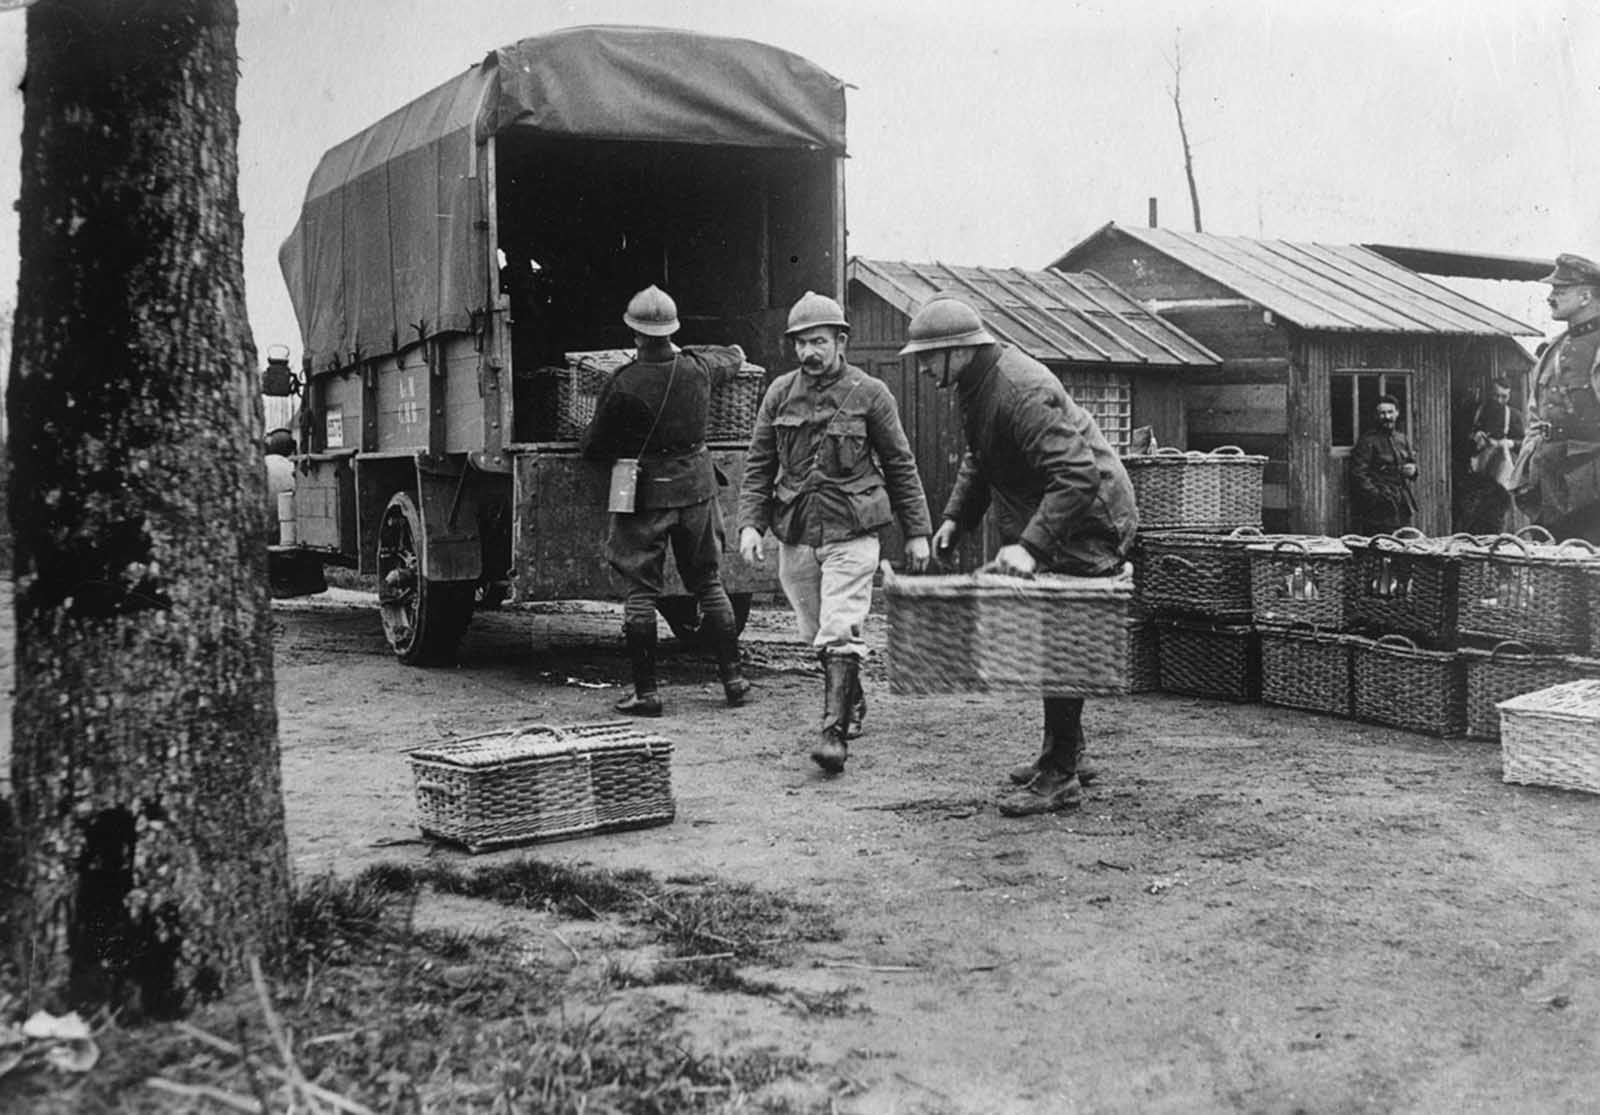 Belgian Army pigeons. Homing pigeon stations were set up behind the front lines, the pigeons themselves sent forward, to return later with messages tied to their legs.